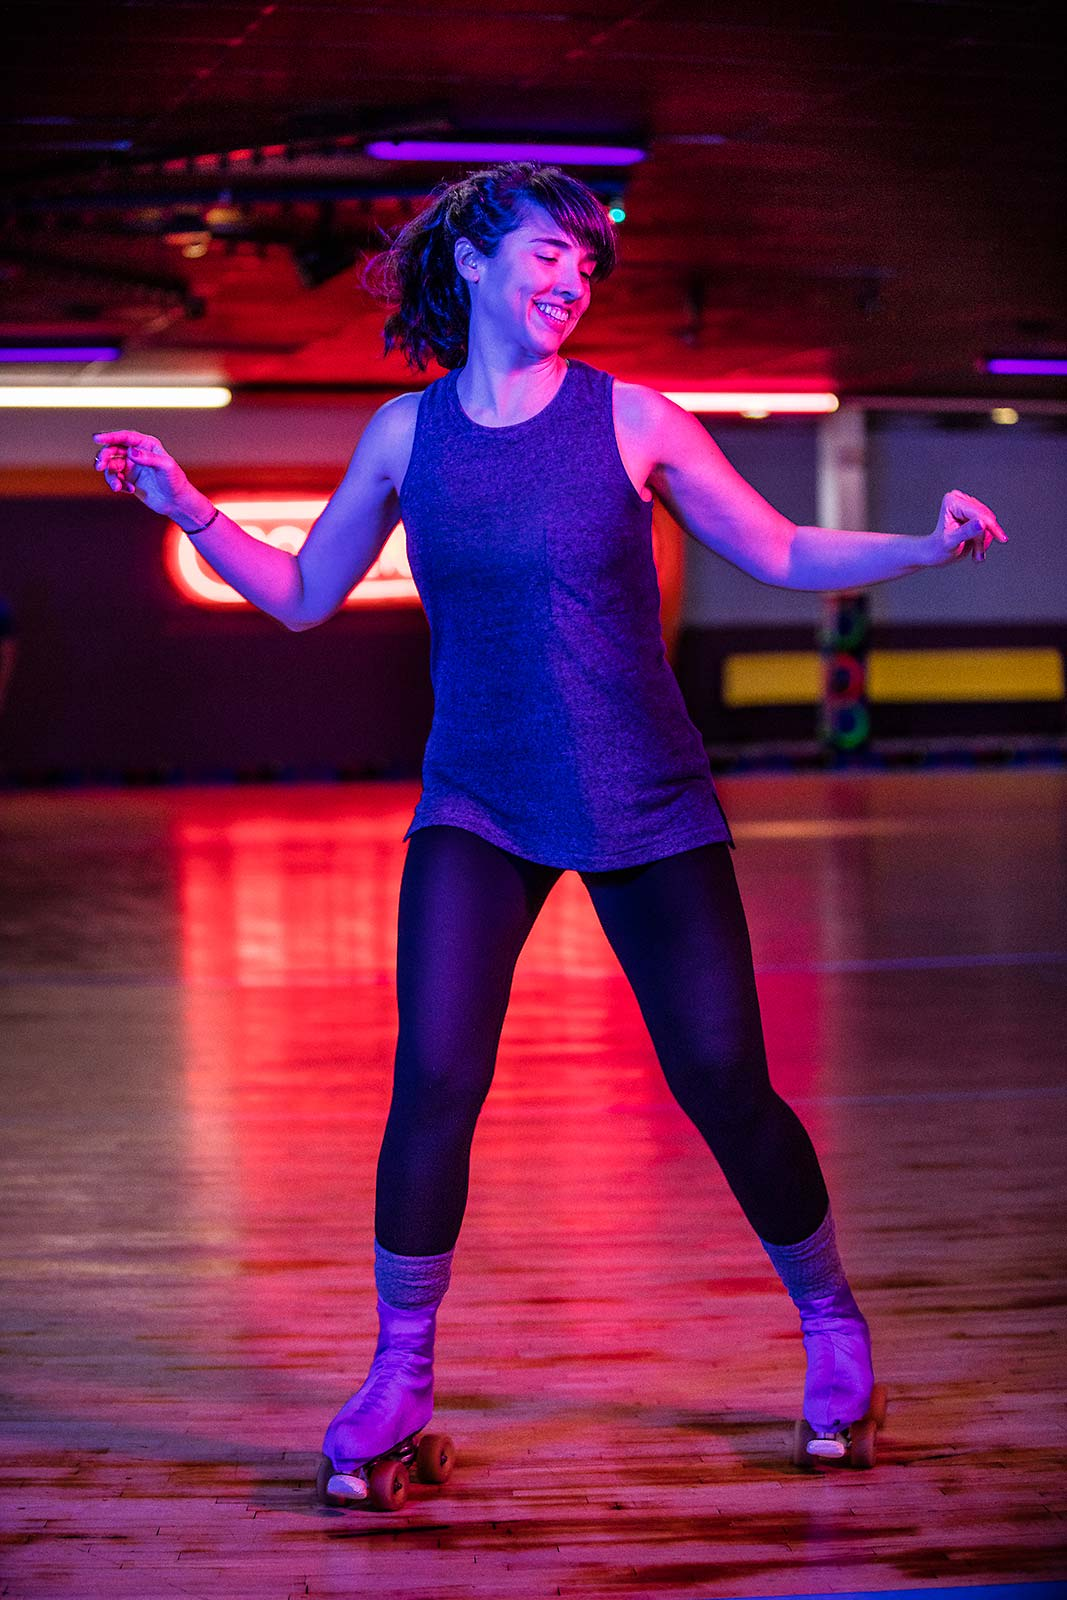 A vibrant colorful portrait of a young woman dancing on roller skates at a rink in Connecticut